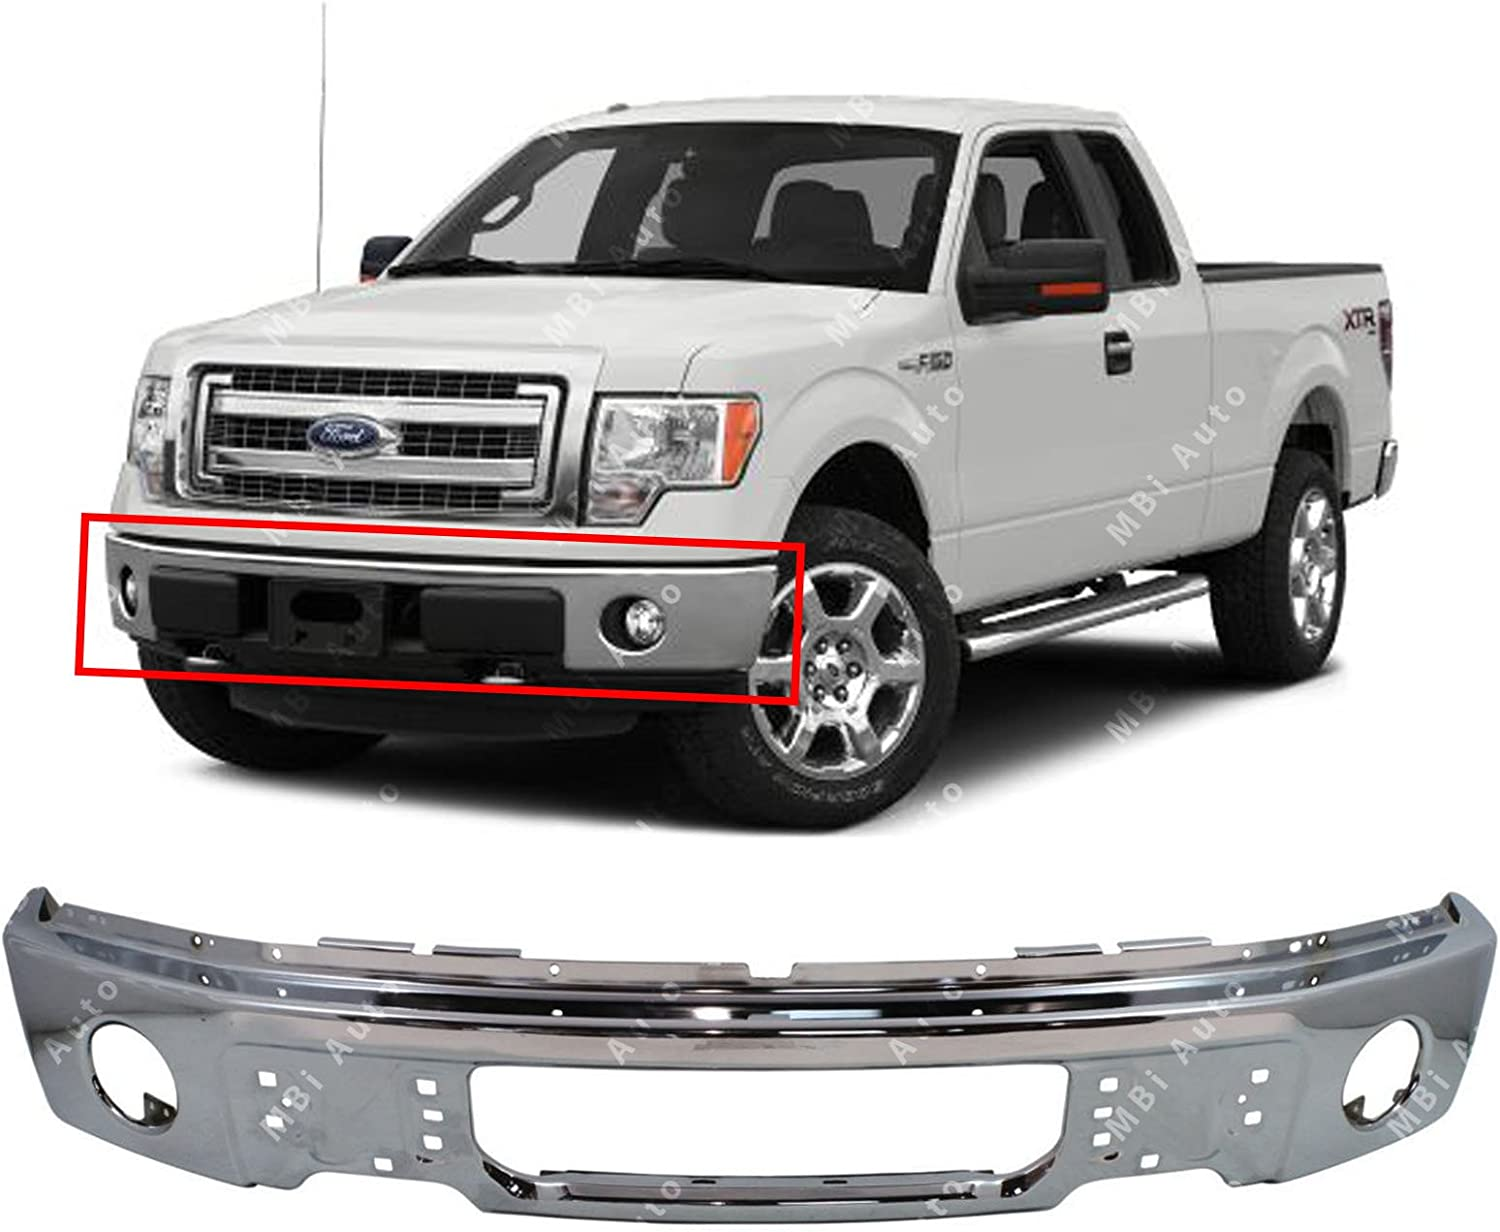 FRONT RIGHT PASSENGER DOOR HANDLE fits FORD F-150 2010 2011 2012 2013